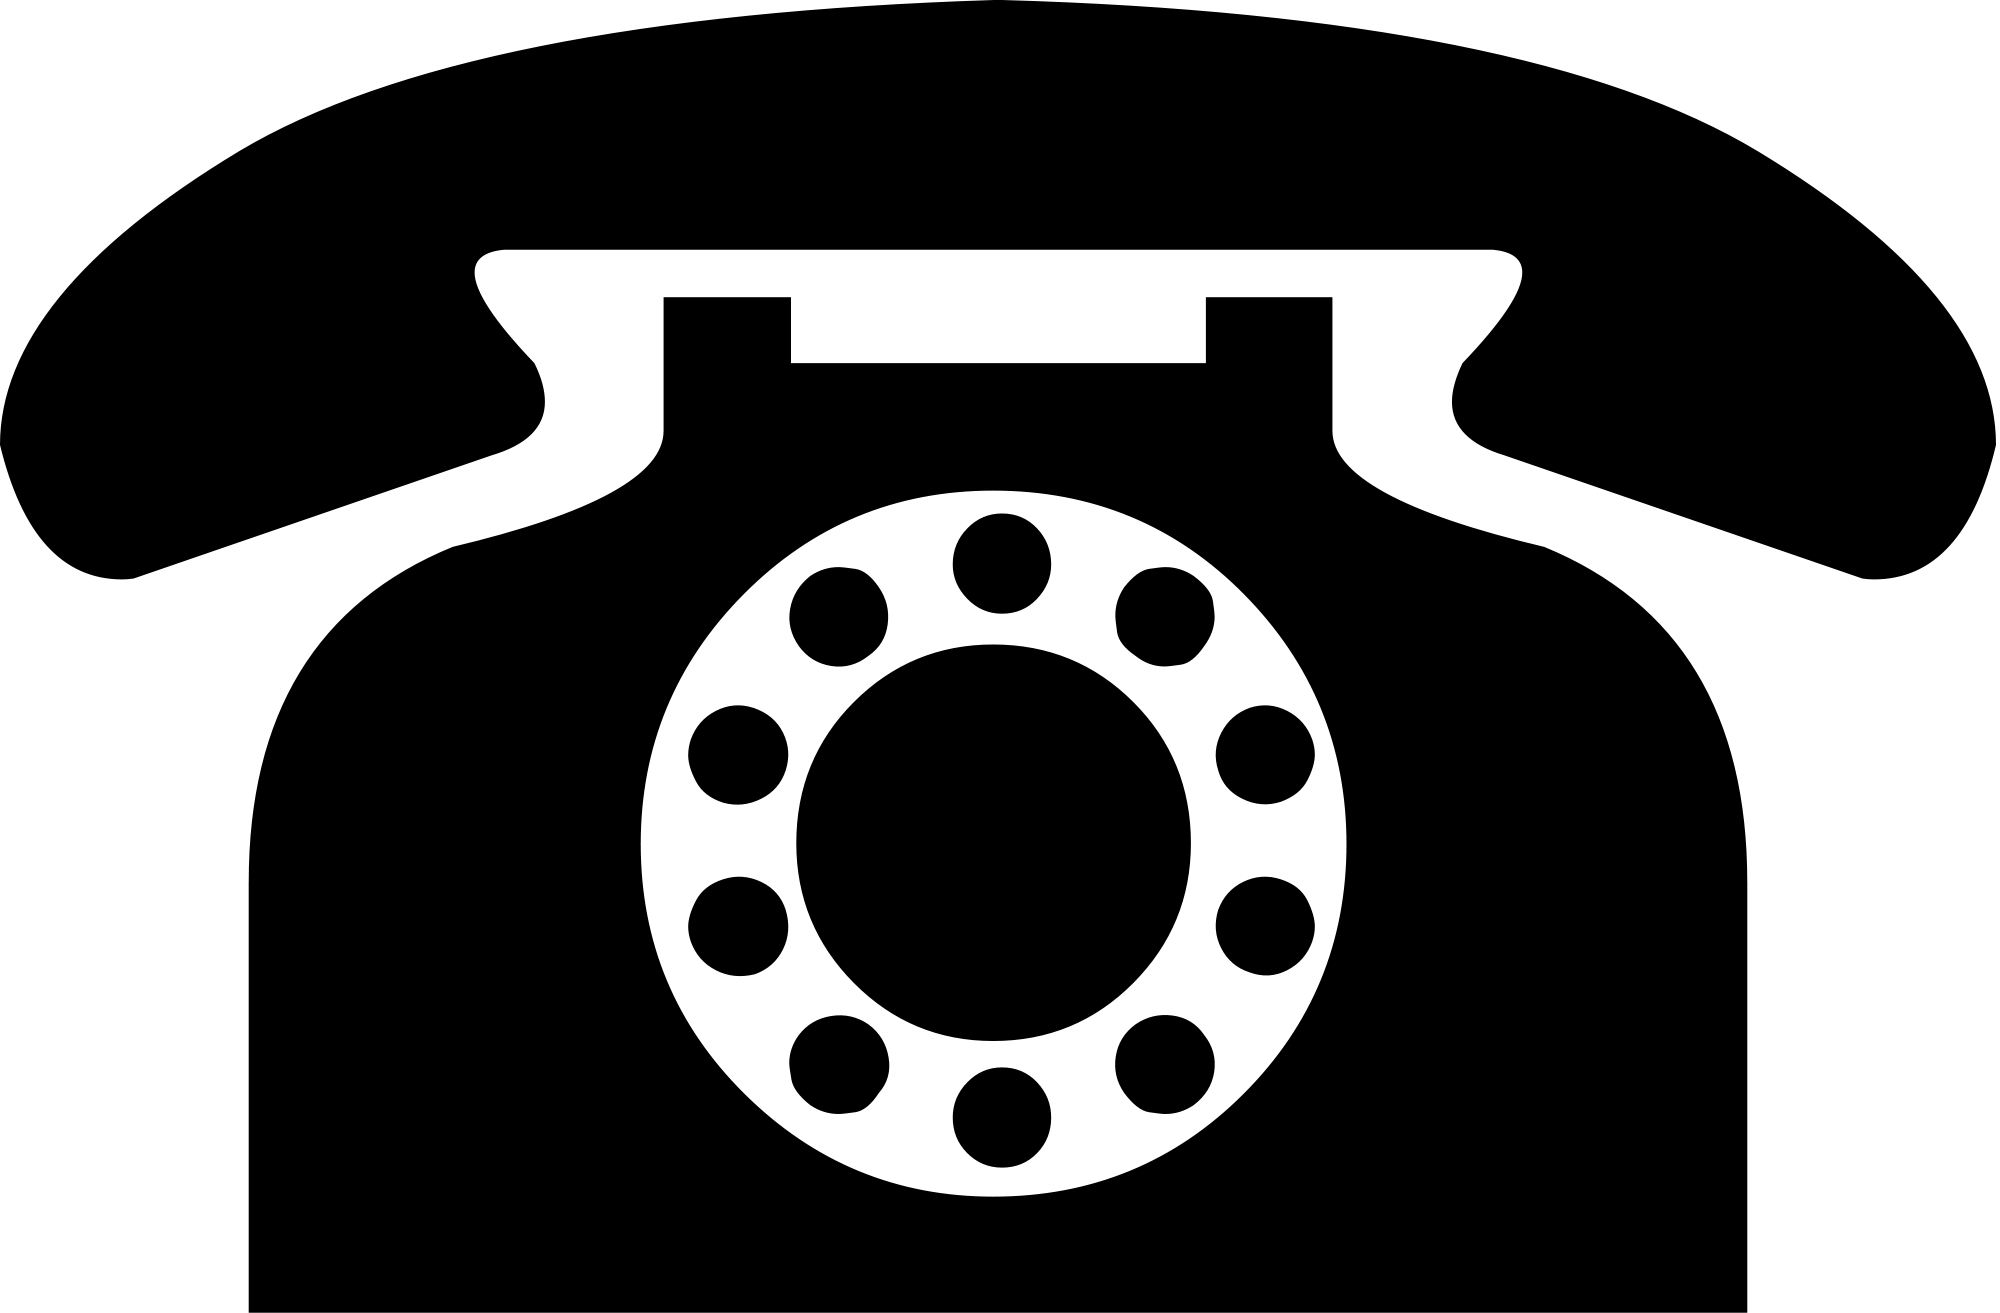 Telephone transparent black. Vintage phone icon png